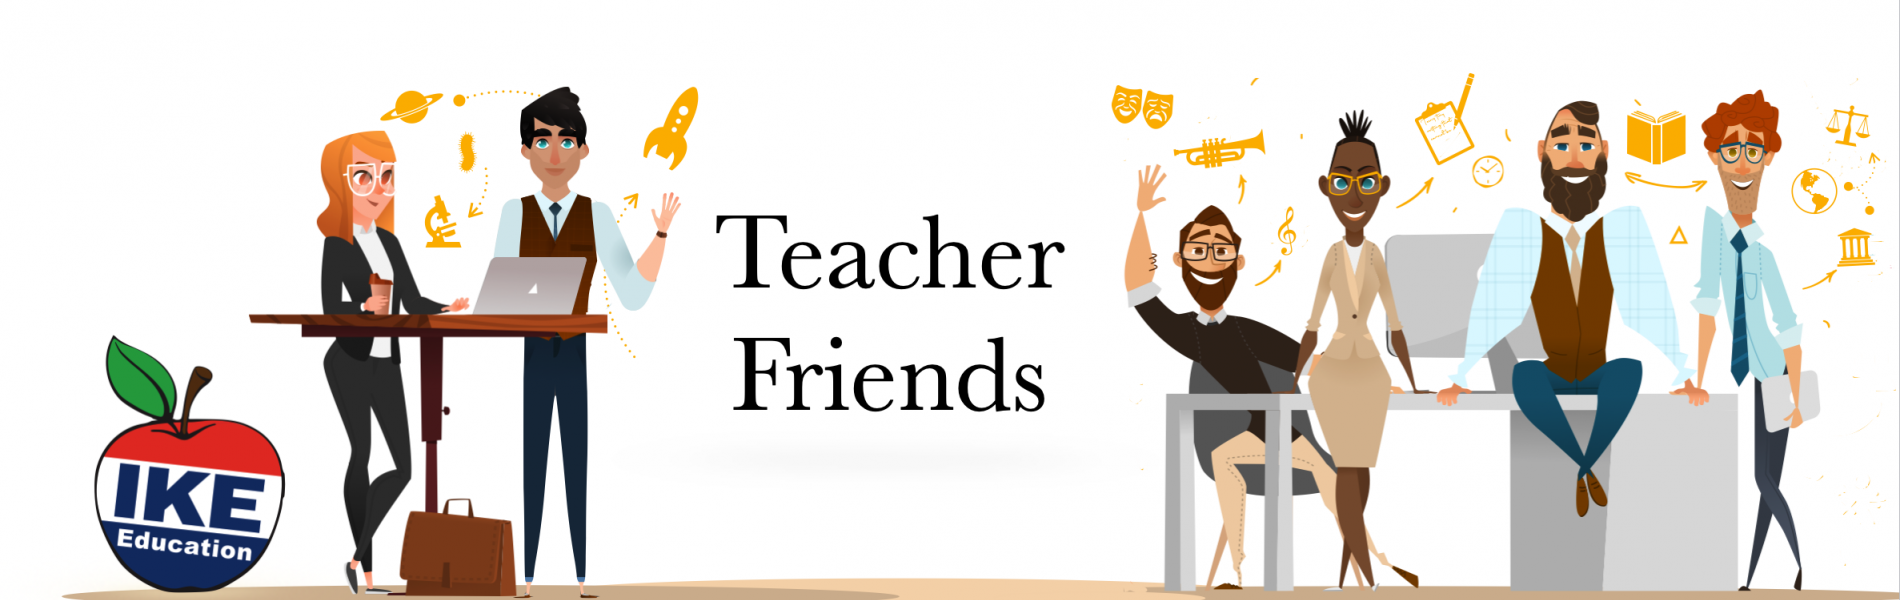 Teacher Friends banner